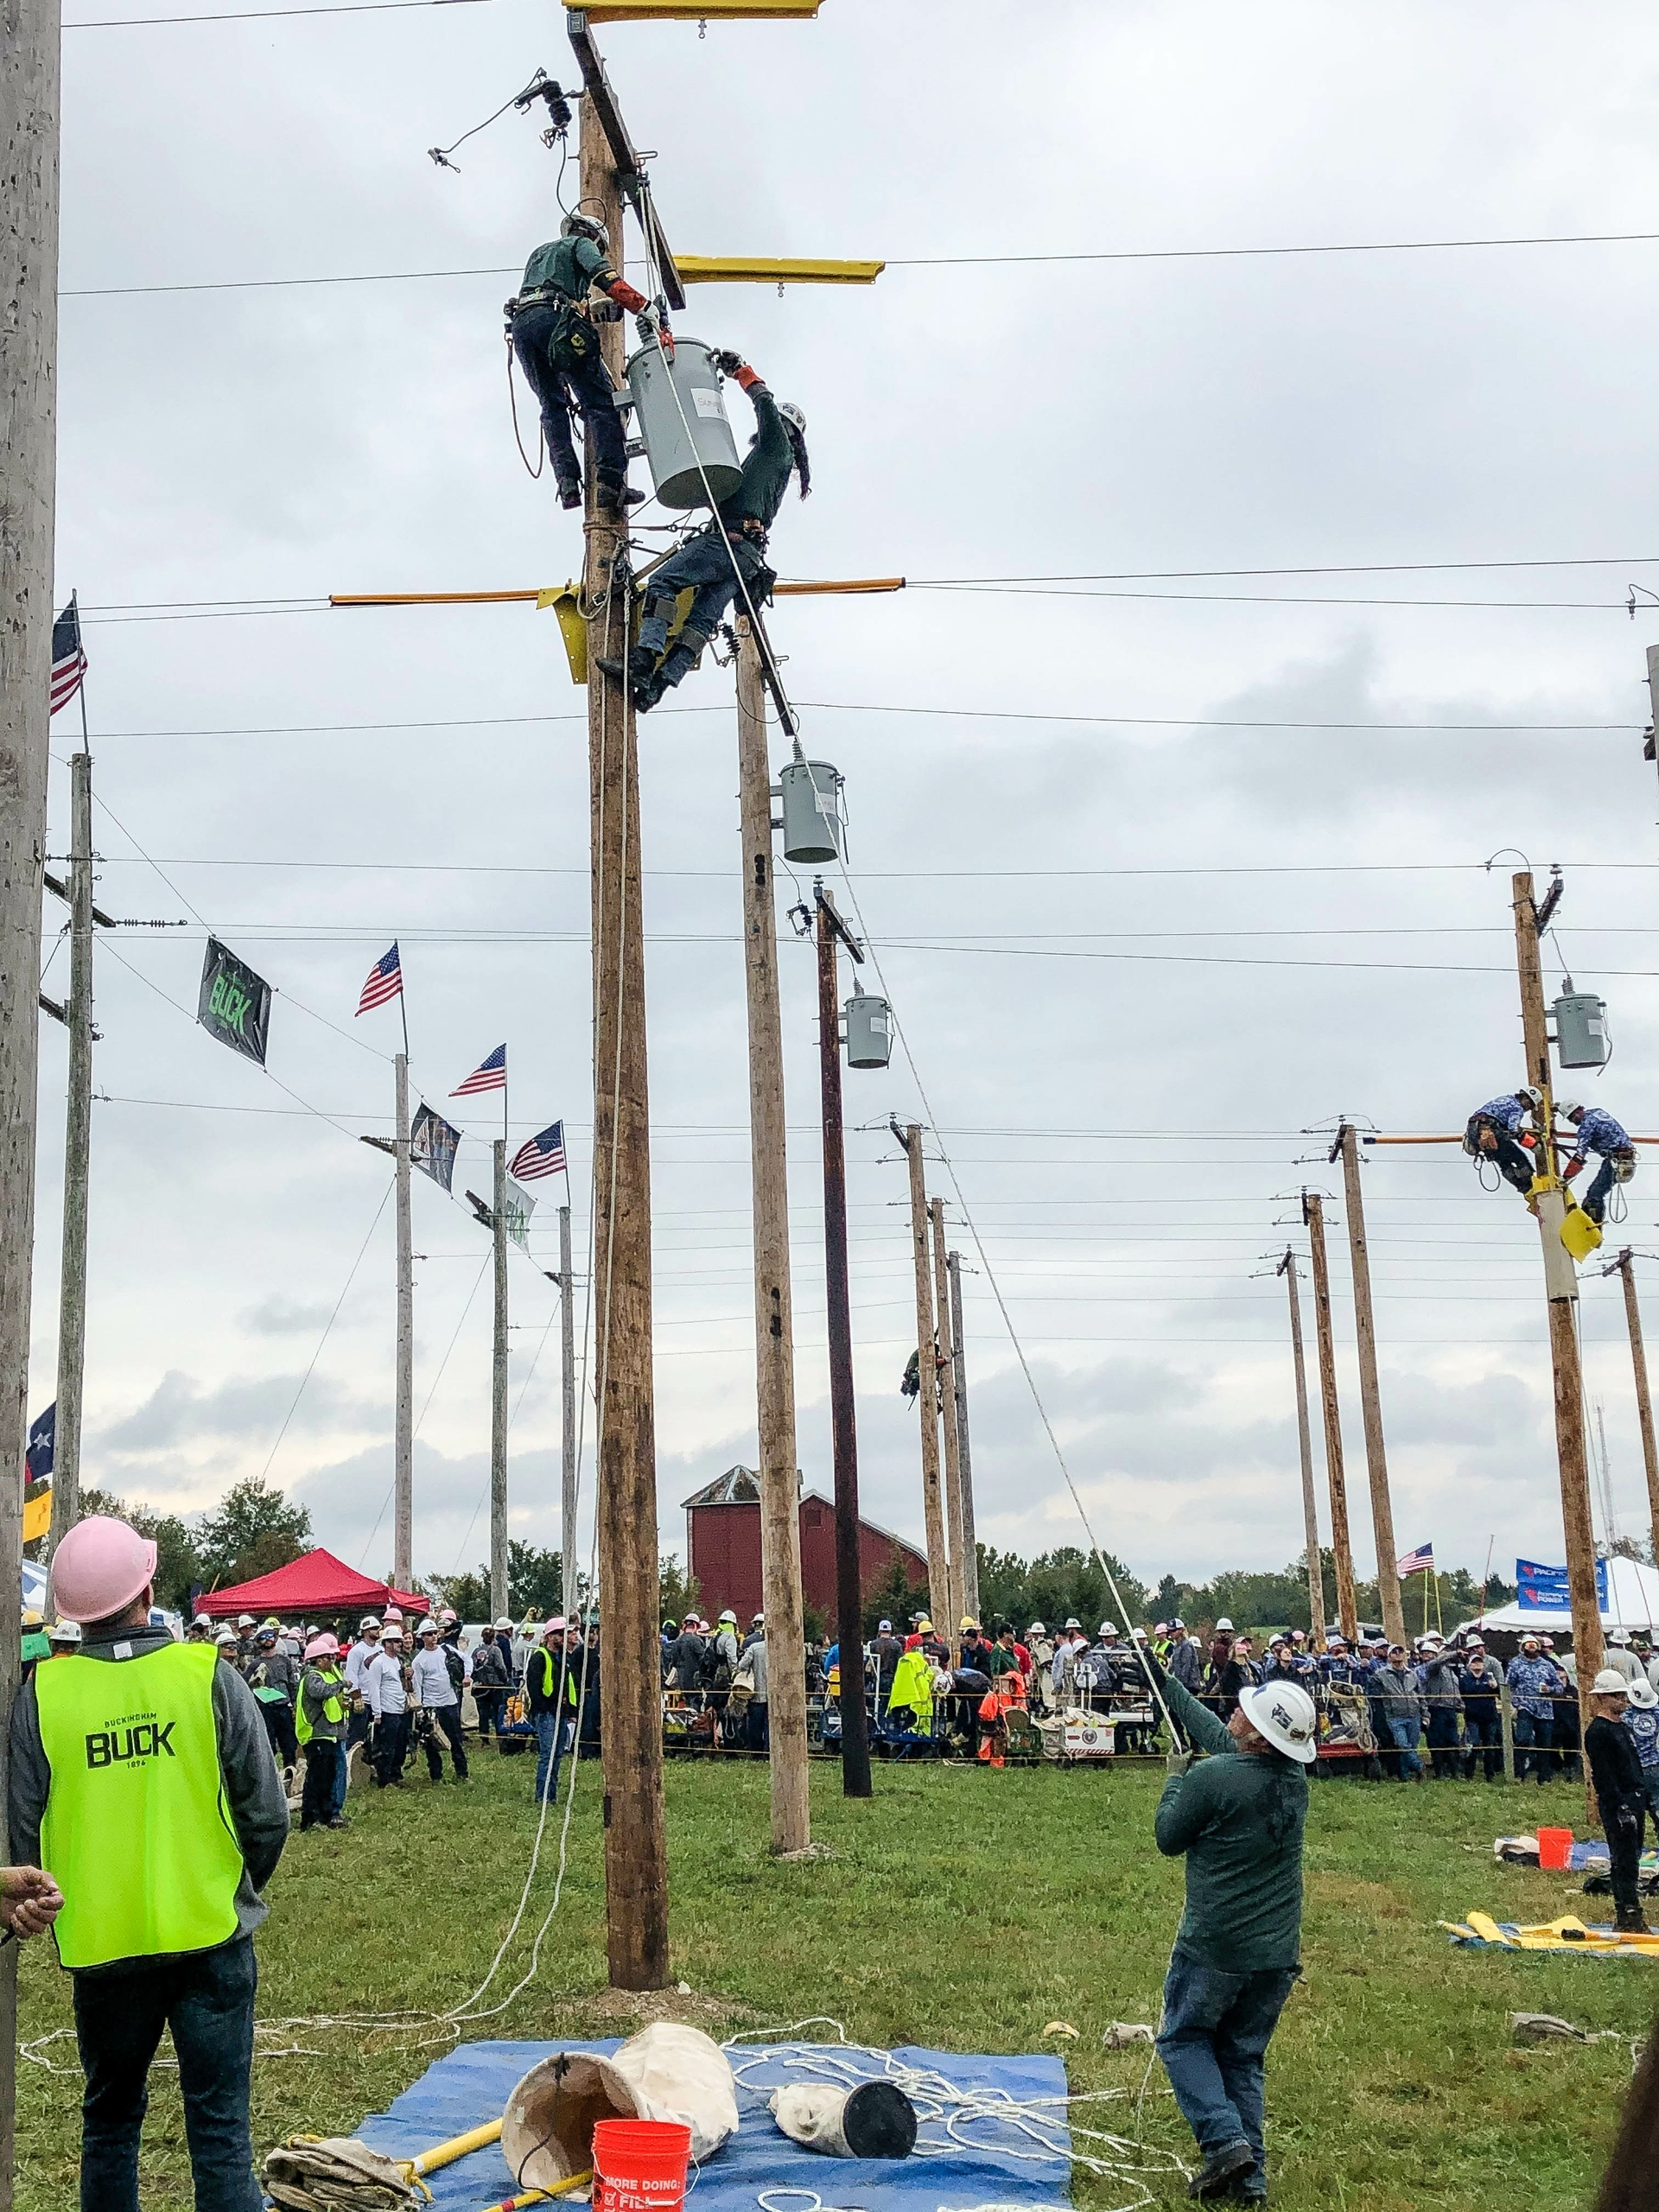 The SCE journeyman team of Ramon Garcia, Jacob Lybbert and Wil Robinson compete at the recent International Lineman's Rodeo in Kansas.